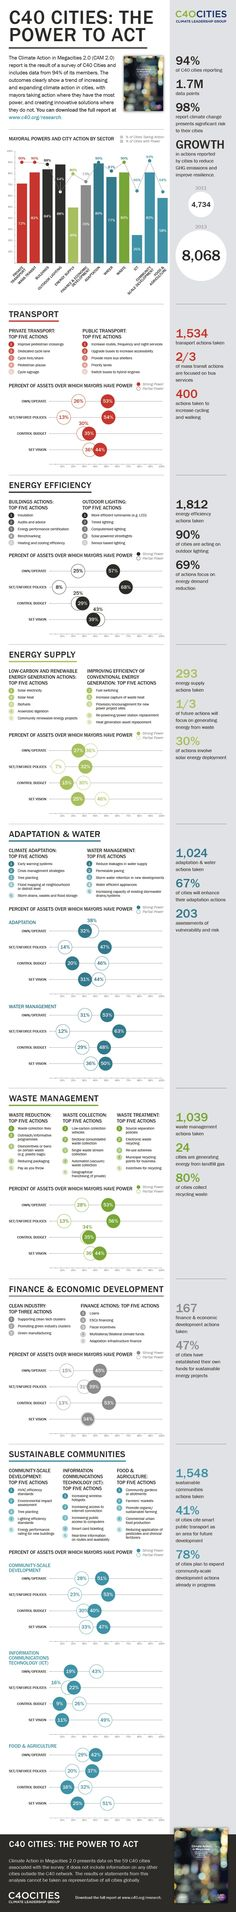 Infographic: C40 Cities Releases Landmark Research Revealing Expansion & Acceleration of Climate Actions in Megacities